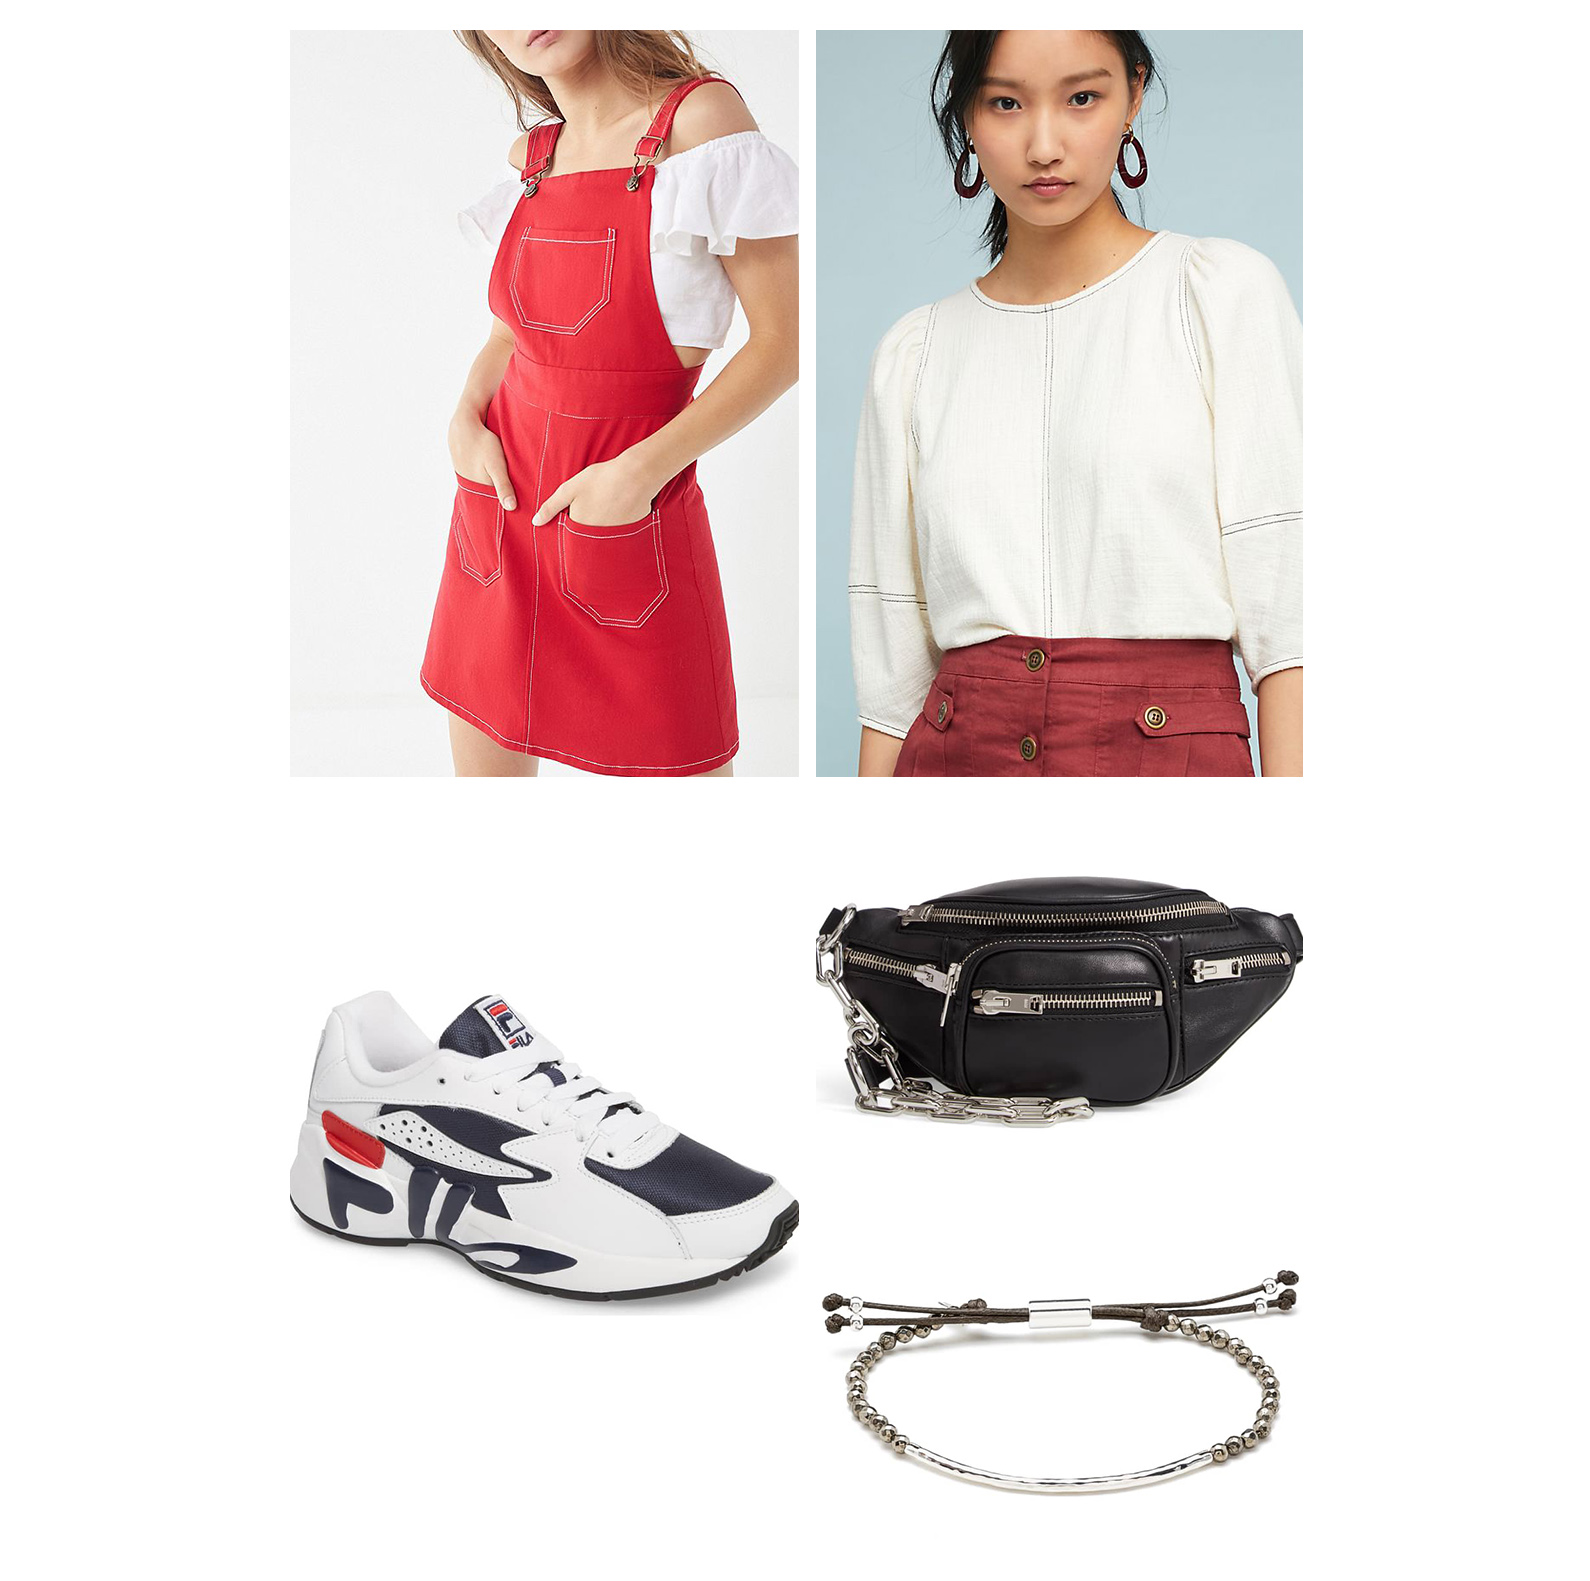 fall-autumn-outfit-weekend-2018-fashion-ideas-red-jumper-dress-overalls-white-blouse-layer-pinafore-black-white-sneakers-belt-bag-bracelet-casual.jpg